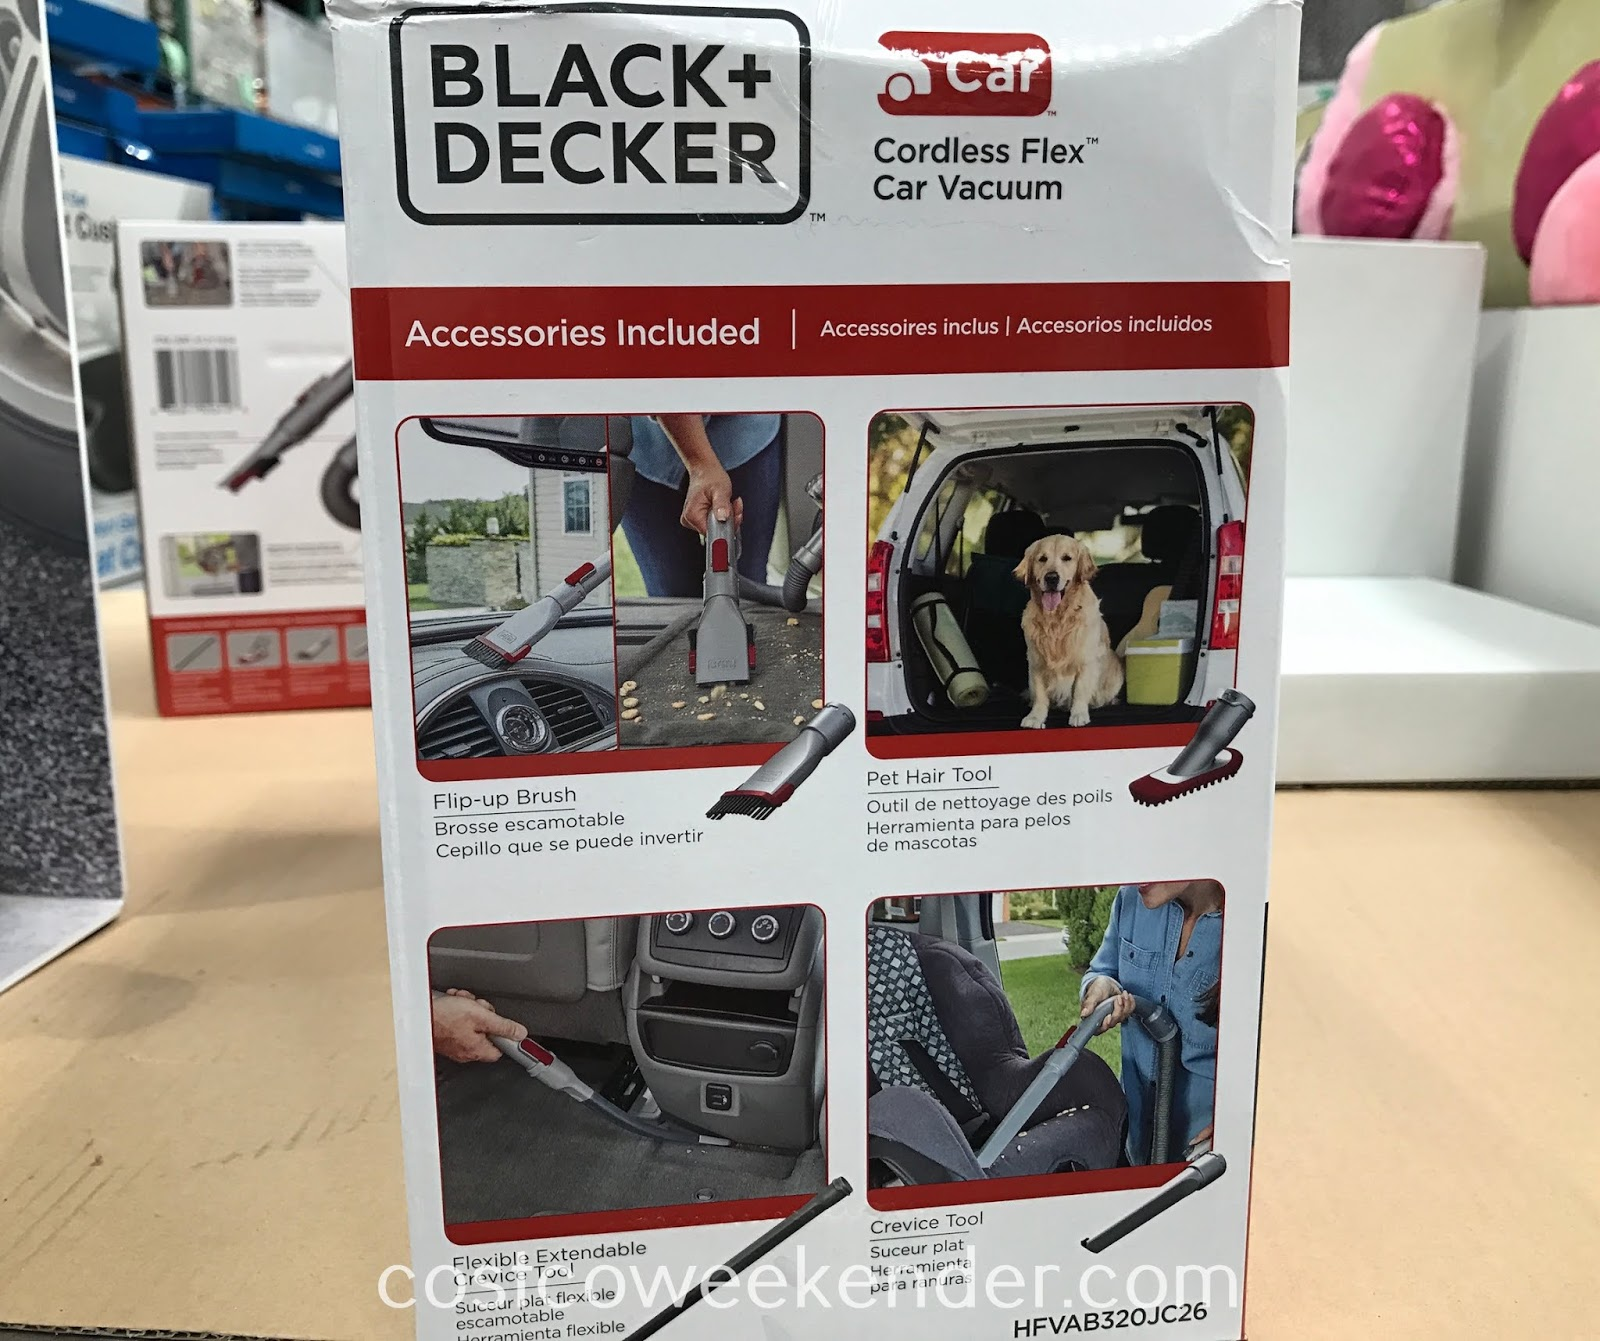 Black & Decker Cordless Flex Car Vacuum: great for any car owner